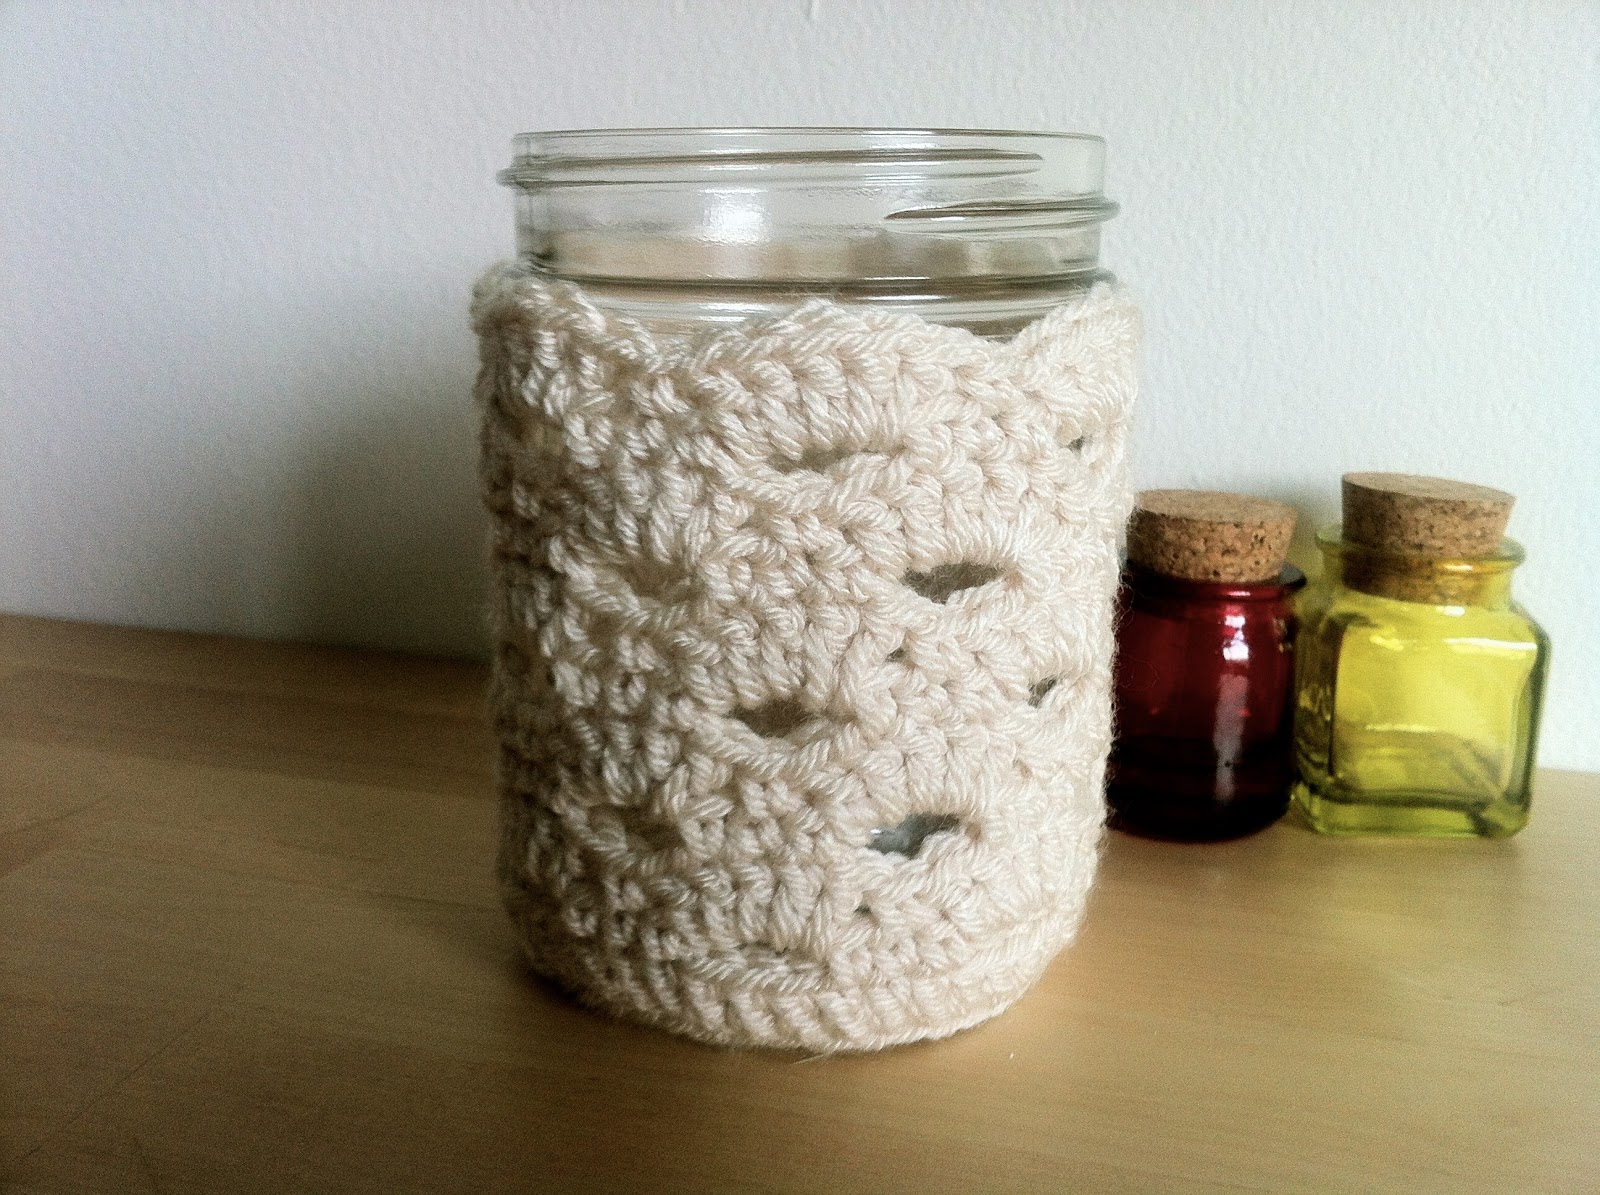 The Way I Crochet: Crochet Jar Cozy